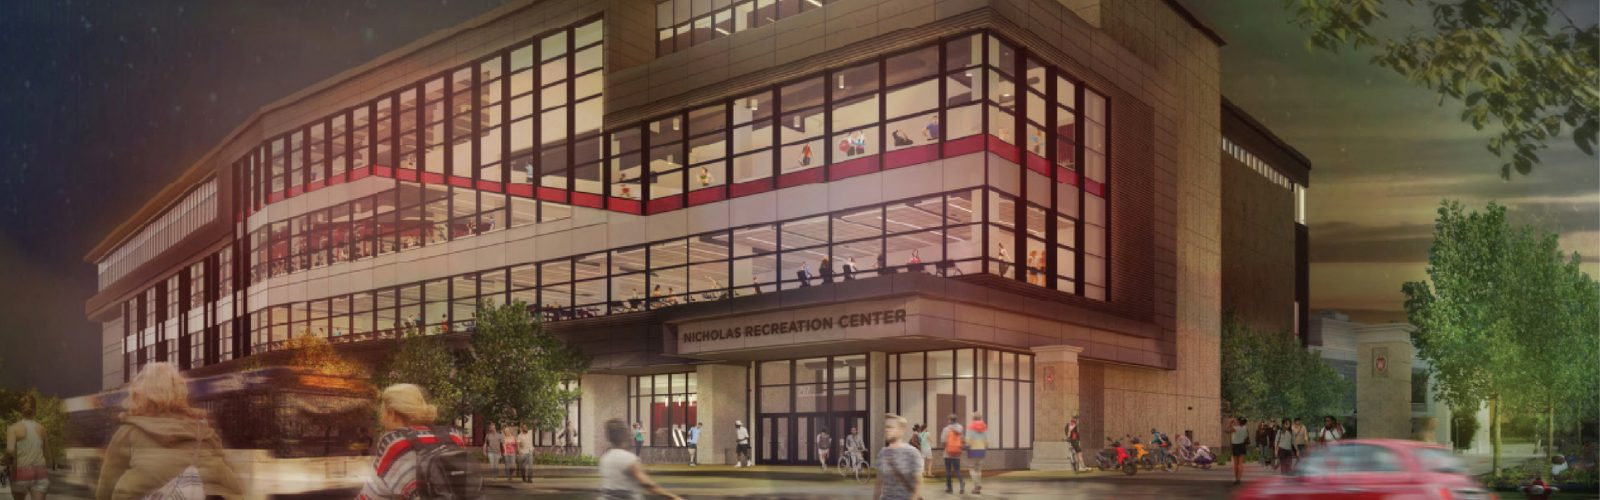 A digital rendering of the Nicholas Recreation Center